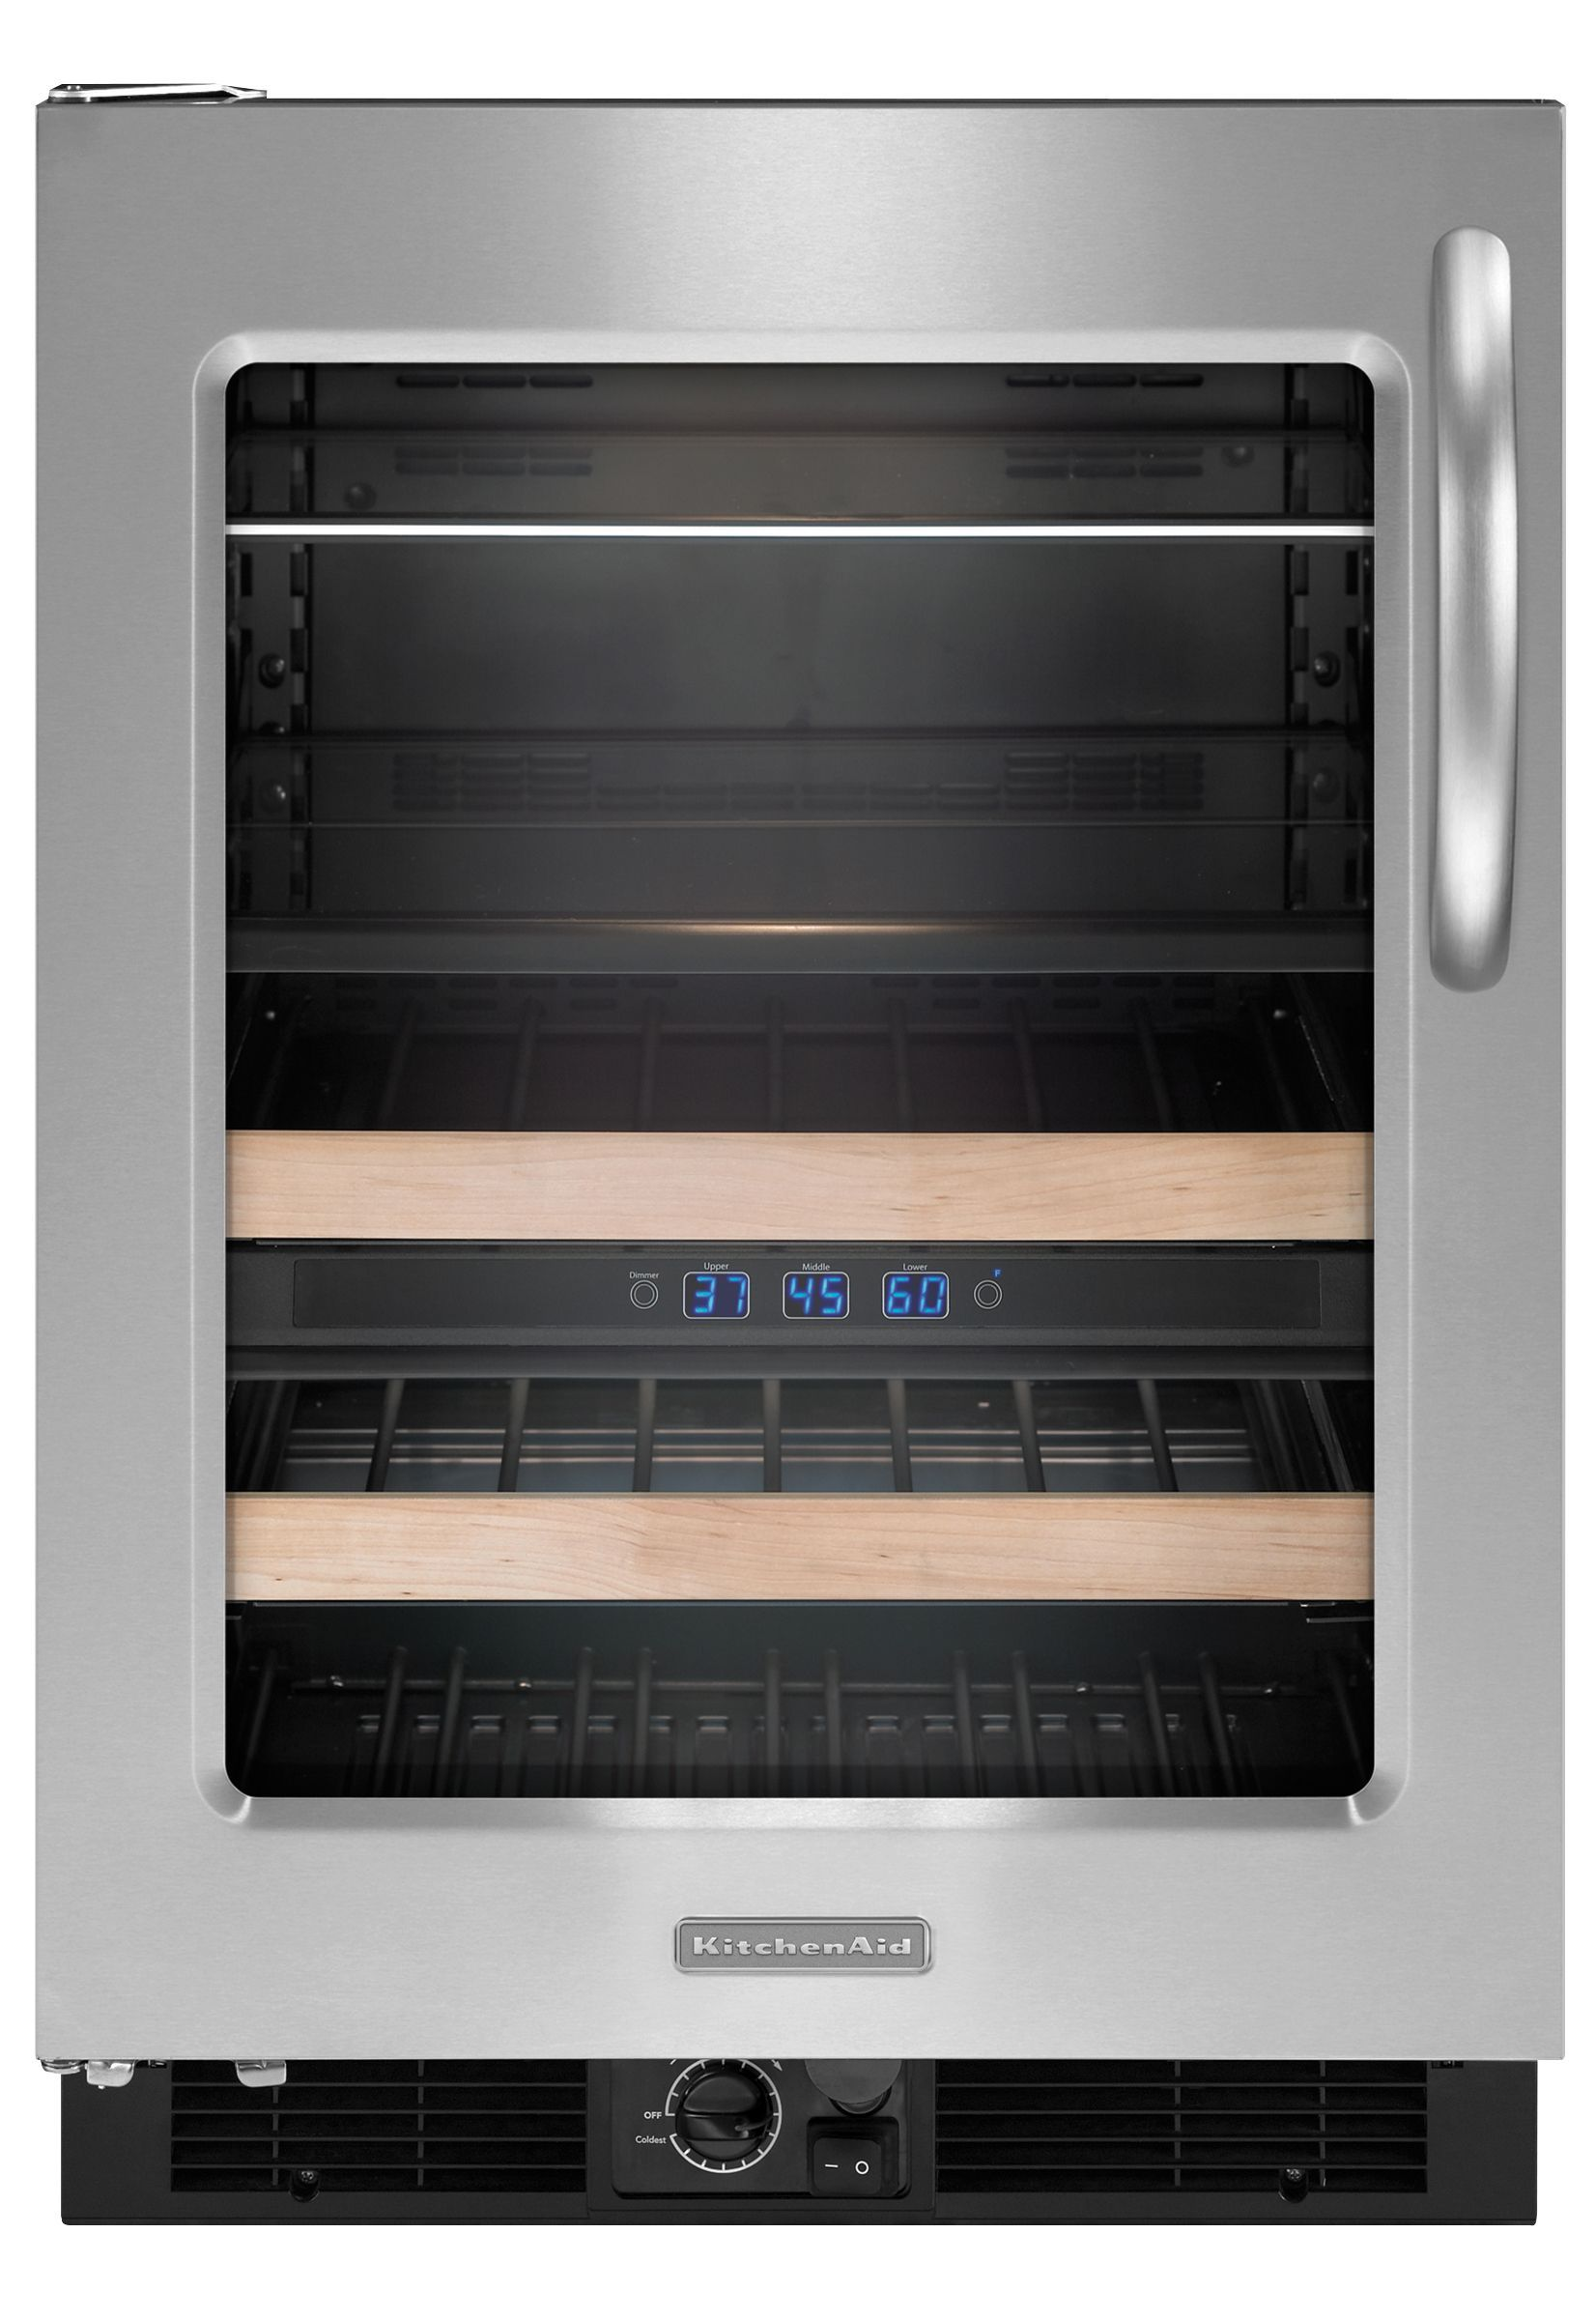 prod cu ft the sears wid toaster microwave combination hei kenmore over oven p elite microhood range spin qlt